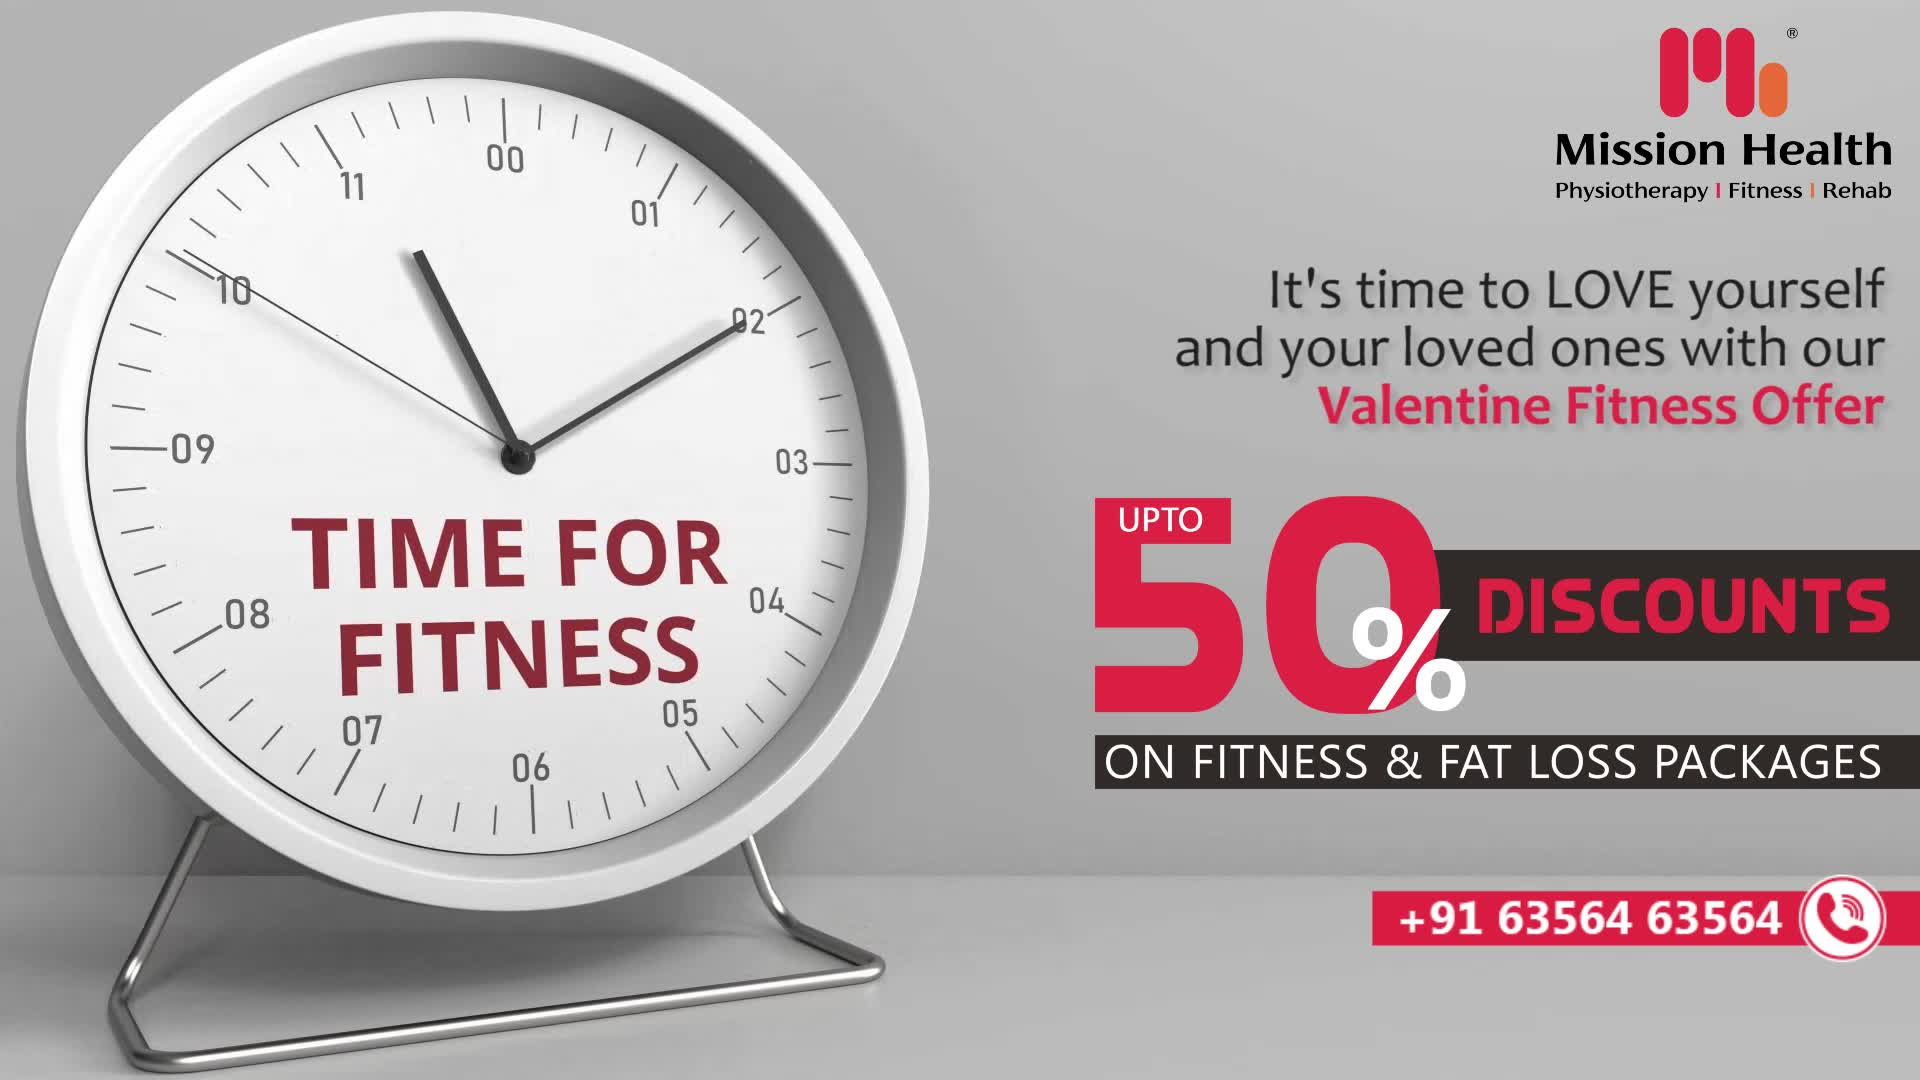 Love is in the AIR  Be FIT, Love Yourself and your loved ones with our Valentine Fitness Offer!  Visit us at your nearest Mission Health Fitness Boutique  Call: +916356463564 Visit: www.missionhealth.co.in  #valentinefitnessoffer #exercise #exercises #fitnessexperts #fitnessexpert #fitnessteam #gymoholic #winterworkouts #fitness #winterfitness #befit #gymoffers #fitnessoffers #goslim #MissionHealth #MissionHealthIndia #MovementIsLife